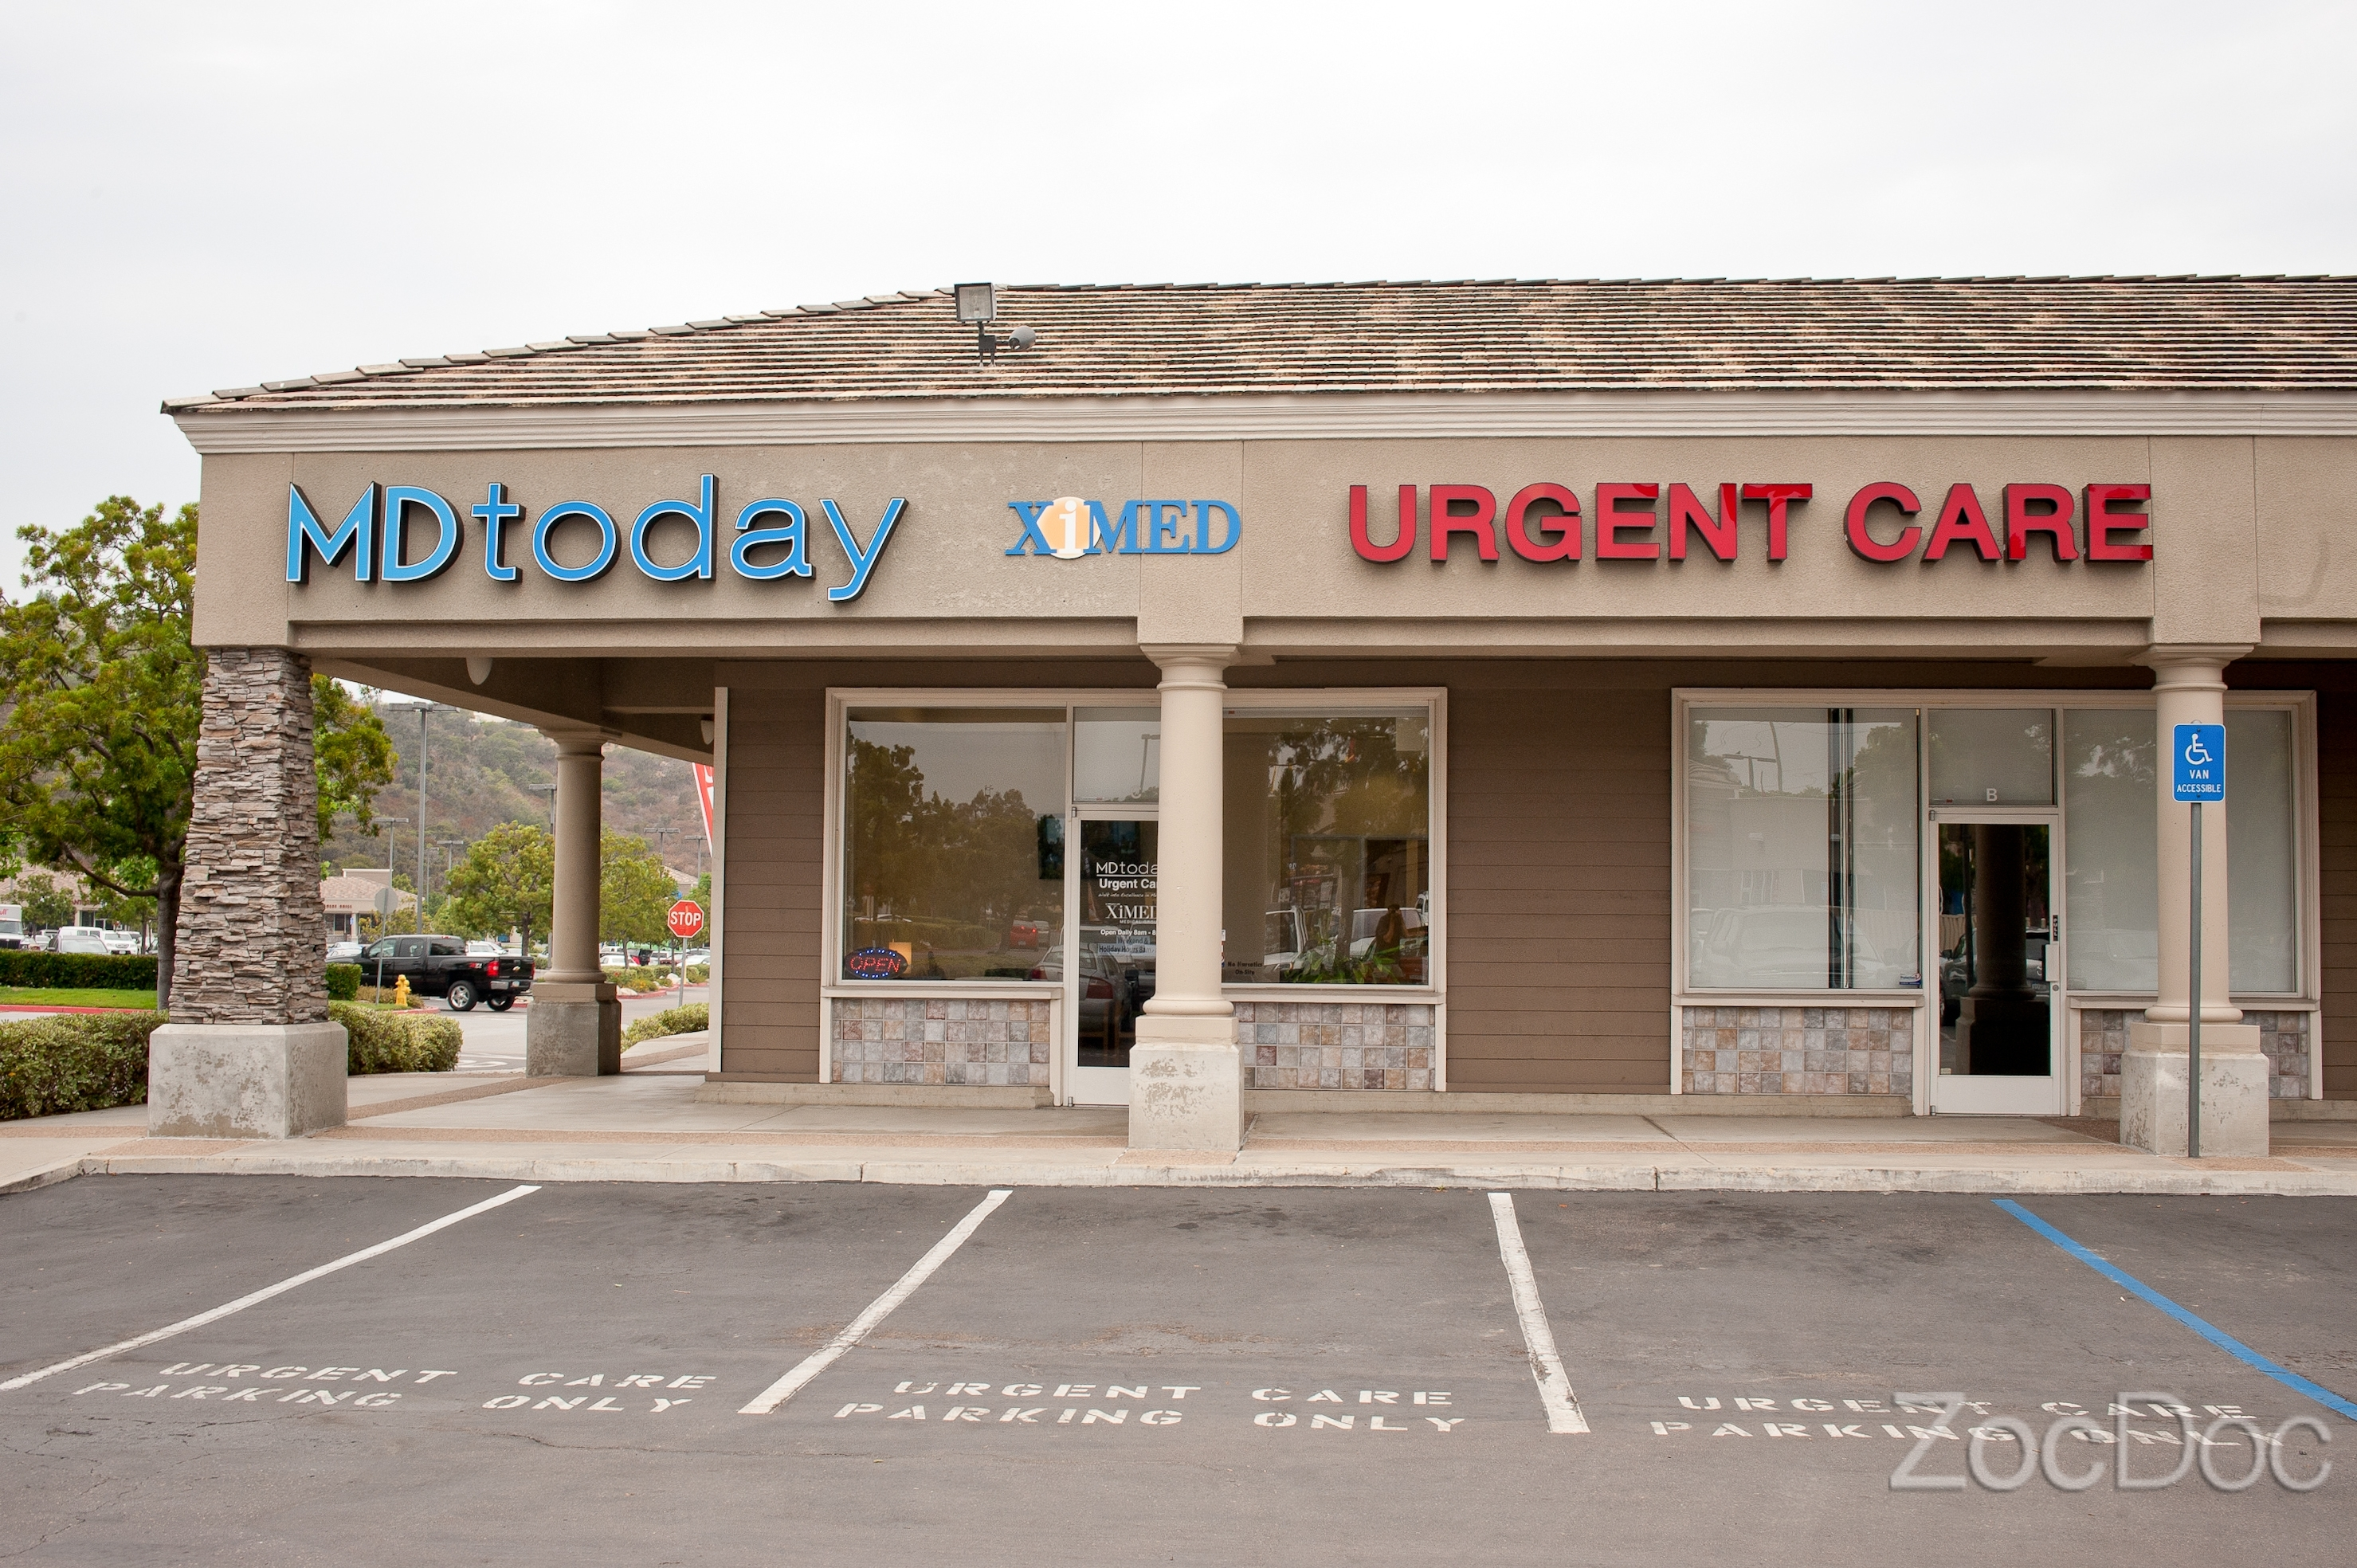 MD Today Urgent Care - Scripps Ranch - Urgent Care Solv in San Diego, CA